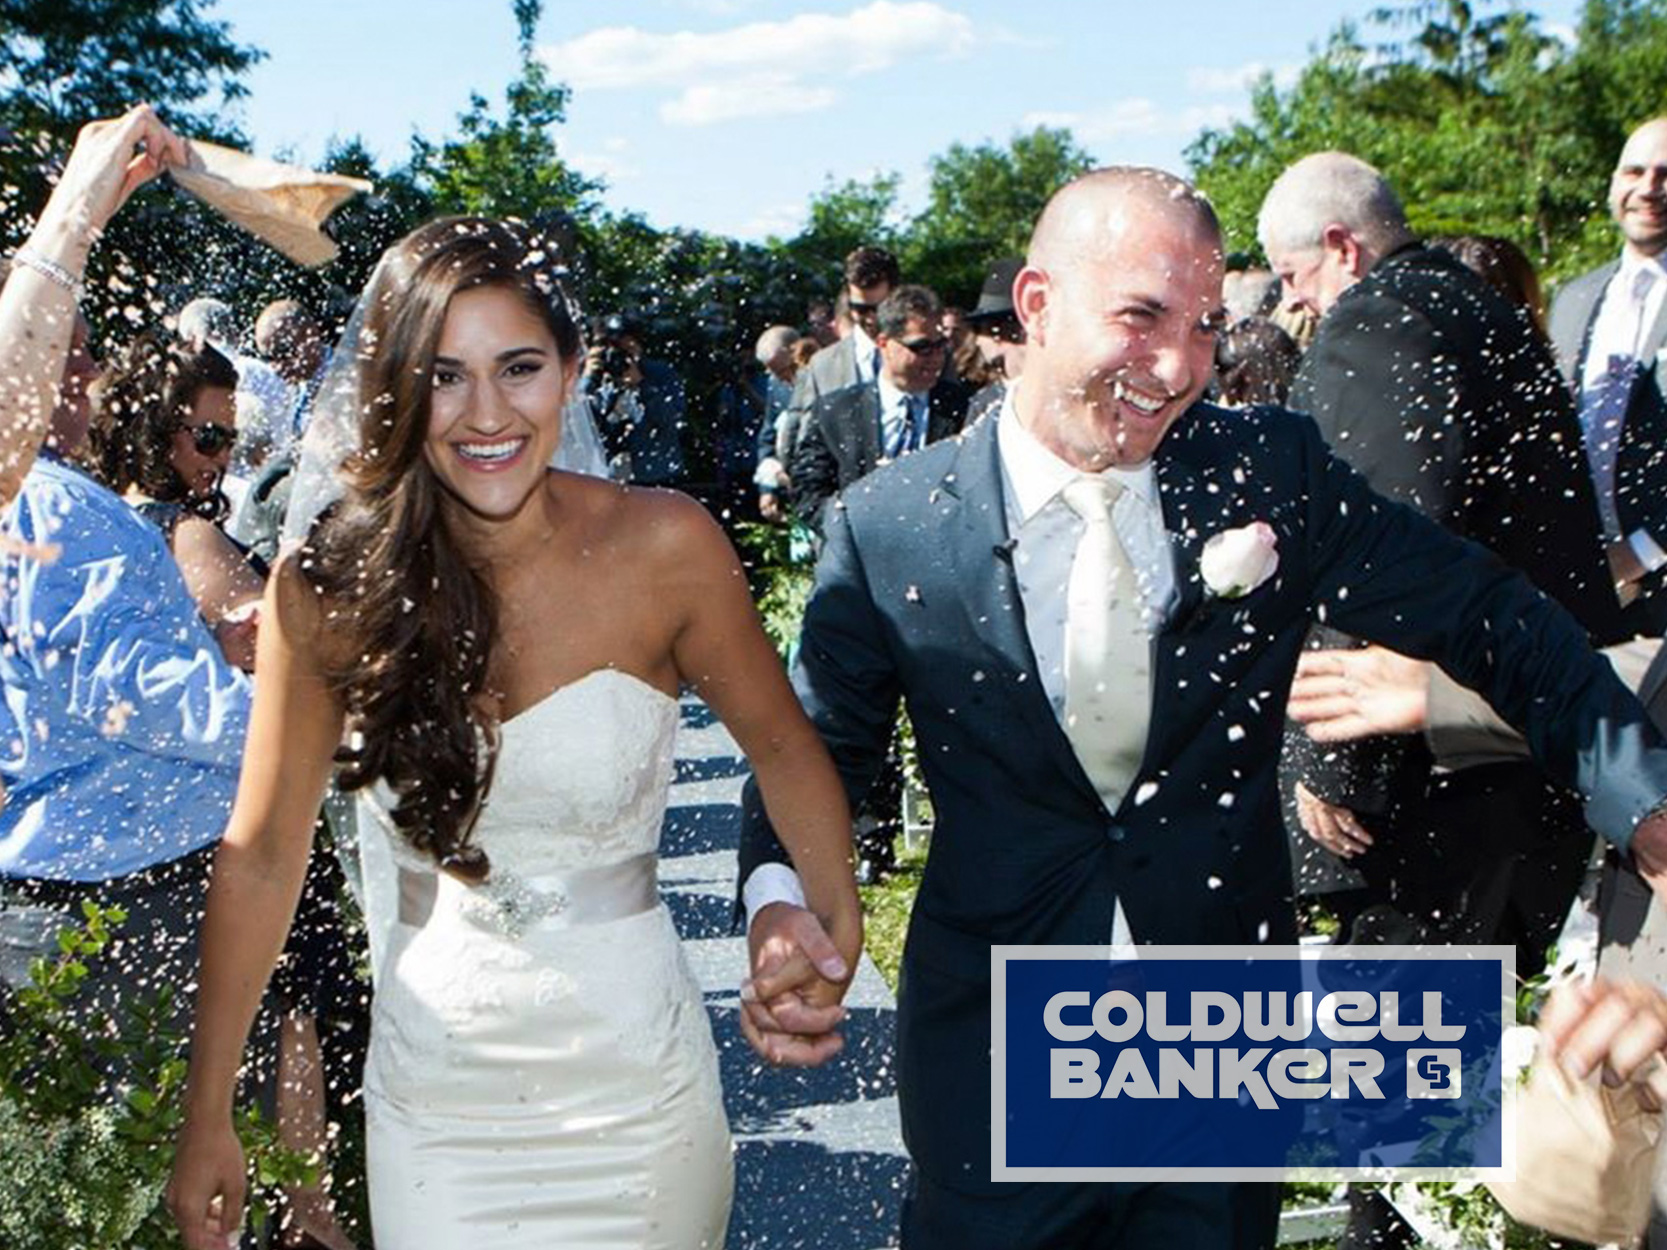 COLDWELL BANKER:  AN EXPERT GUILD TO BACKYARD WEDDINGS